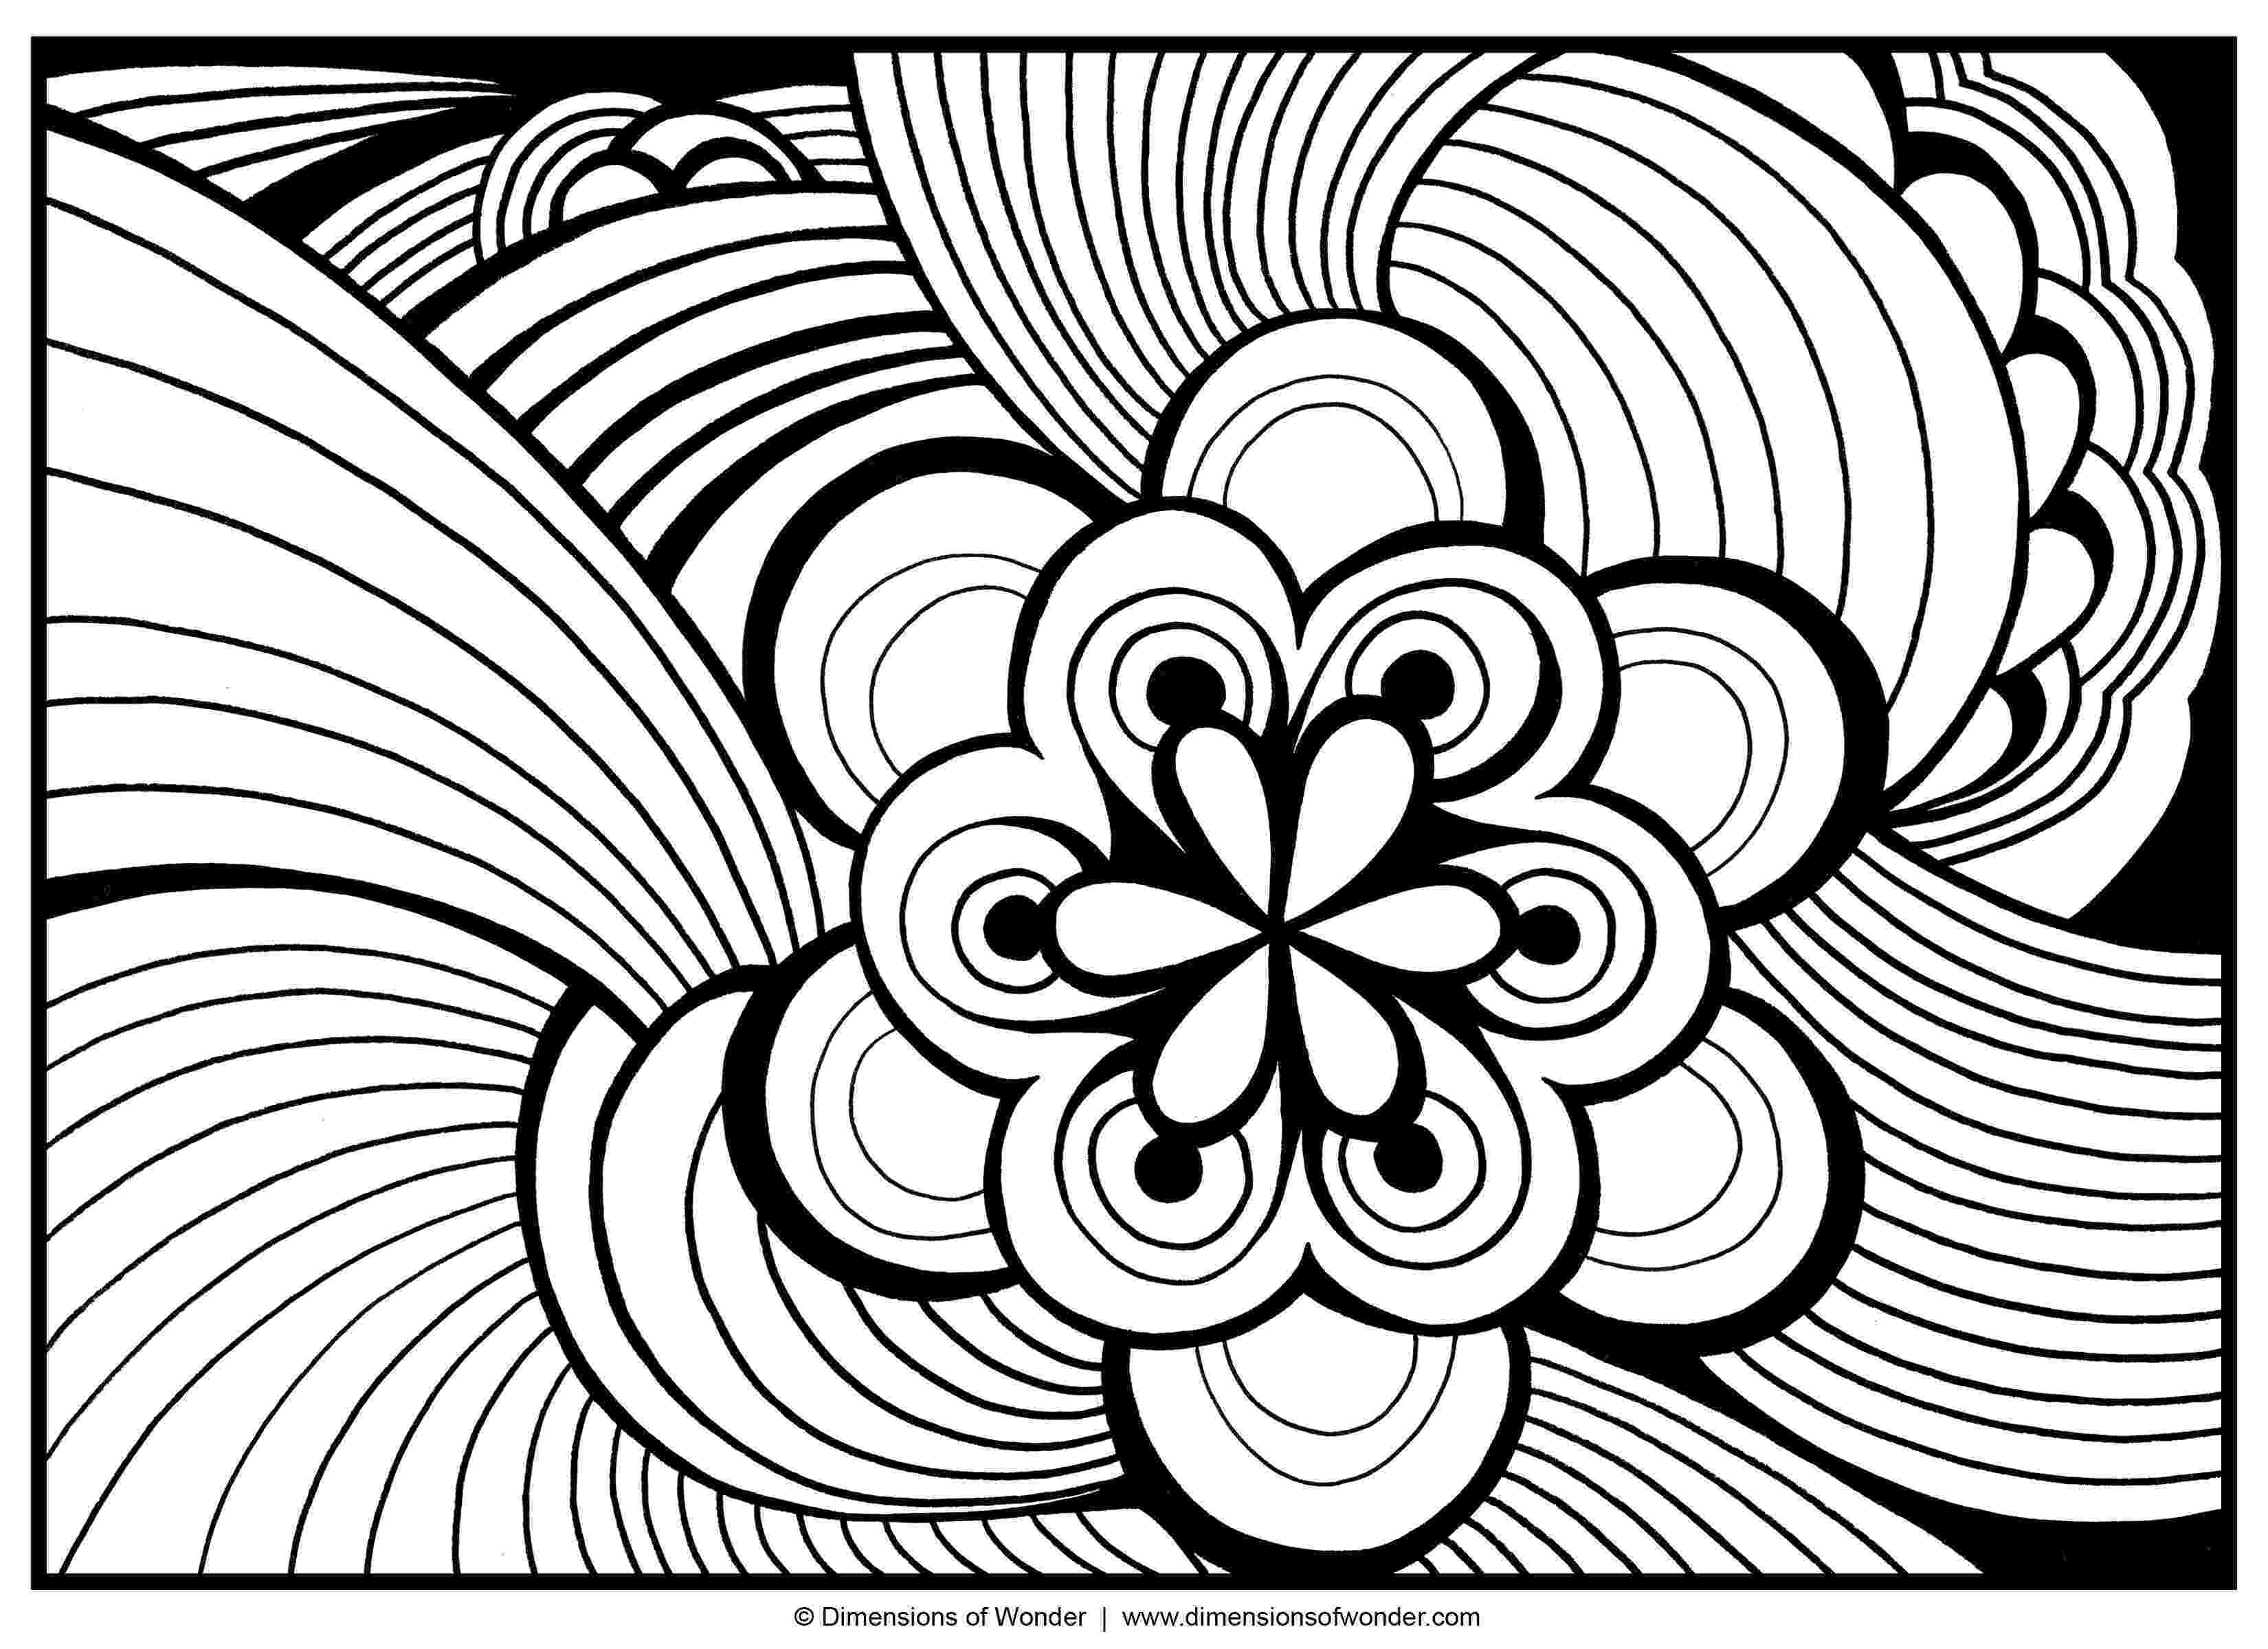 abstract art coloring pages abstract coloring pages free large images coloring pages abstract art